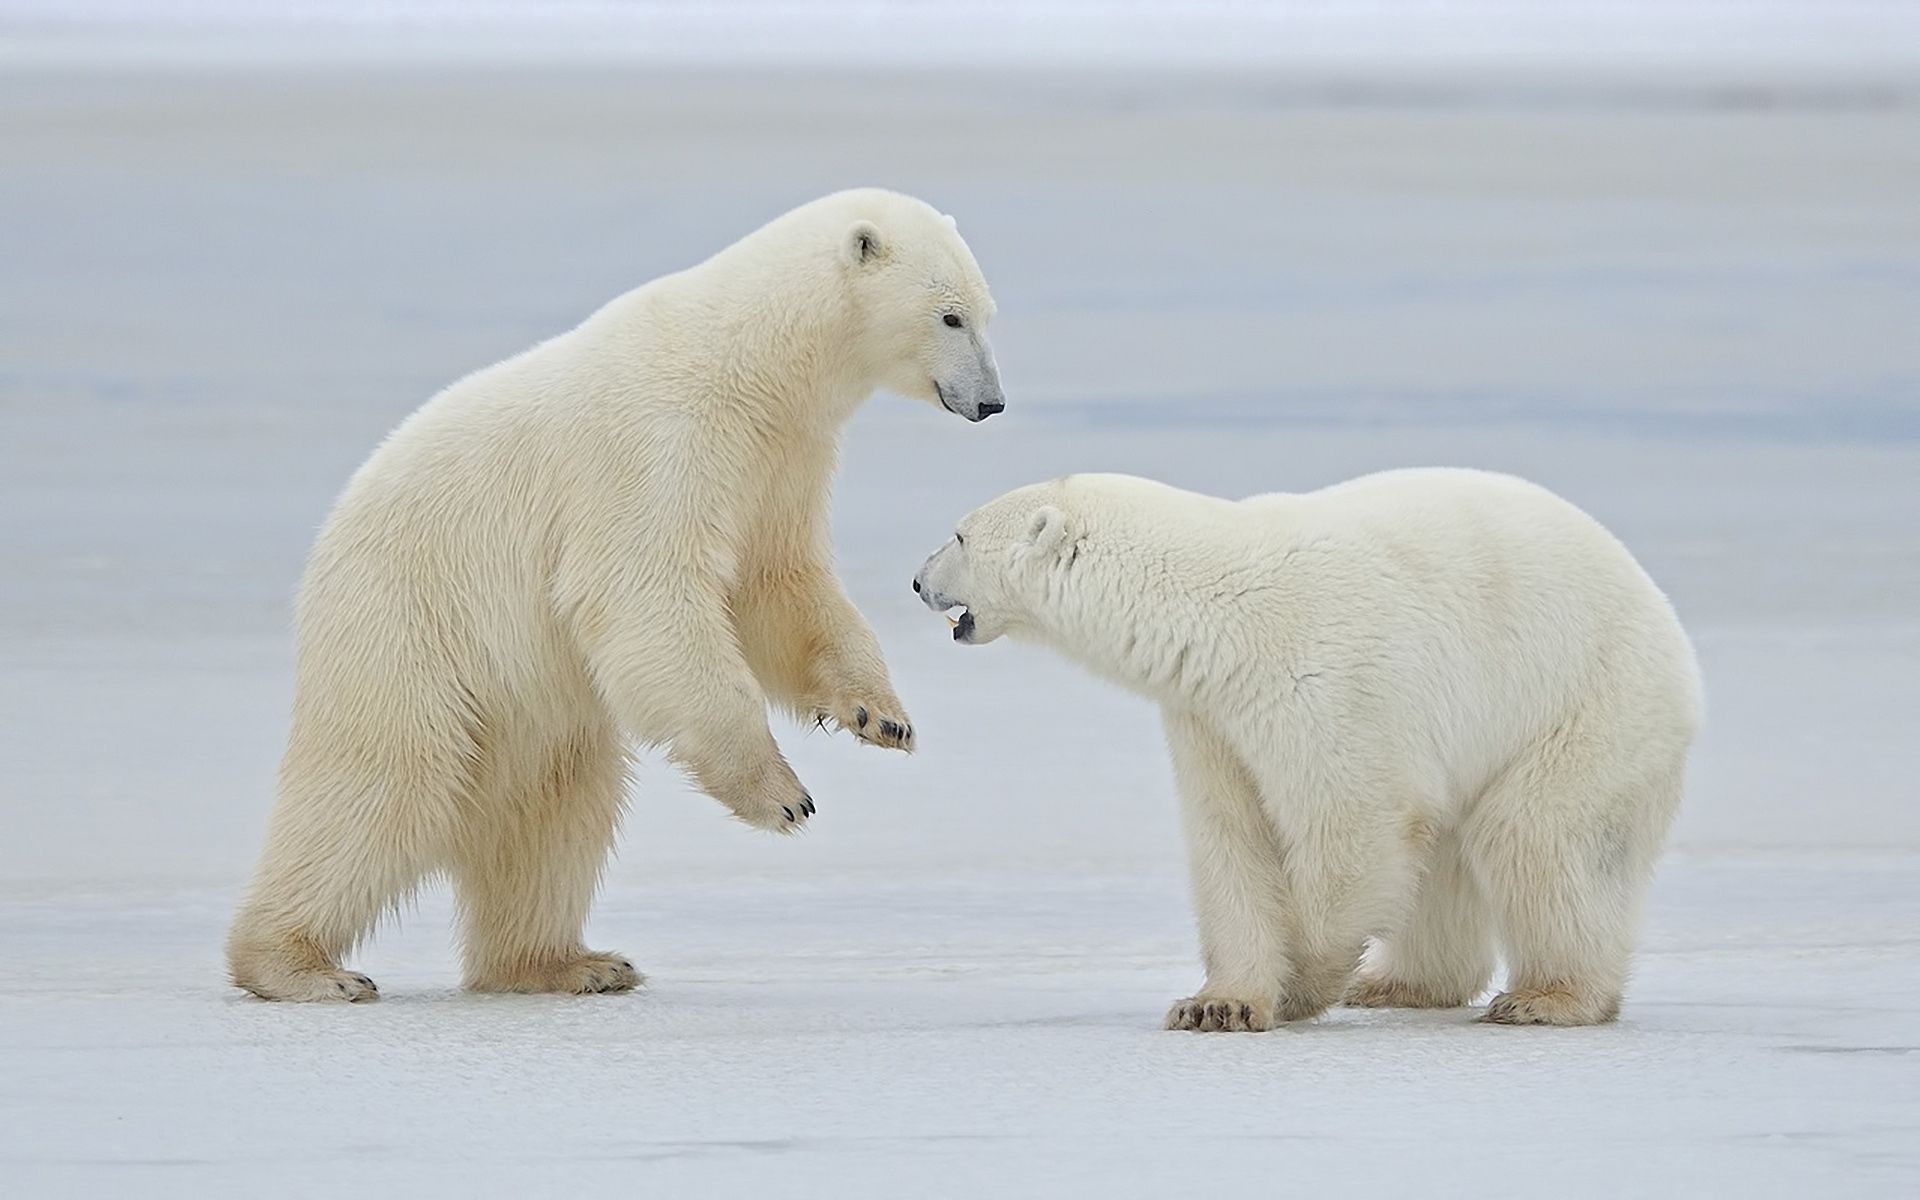 132445 download wallpaper Animals, White Bears, Polar Bears, Snow, Couple, Pair, Stroll screensavers and pictures for free